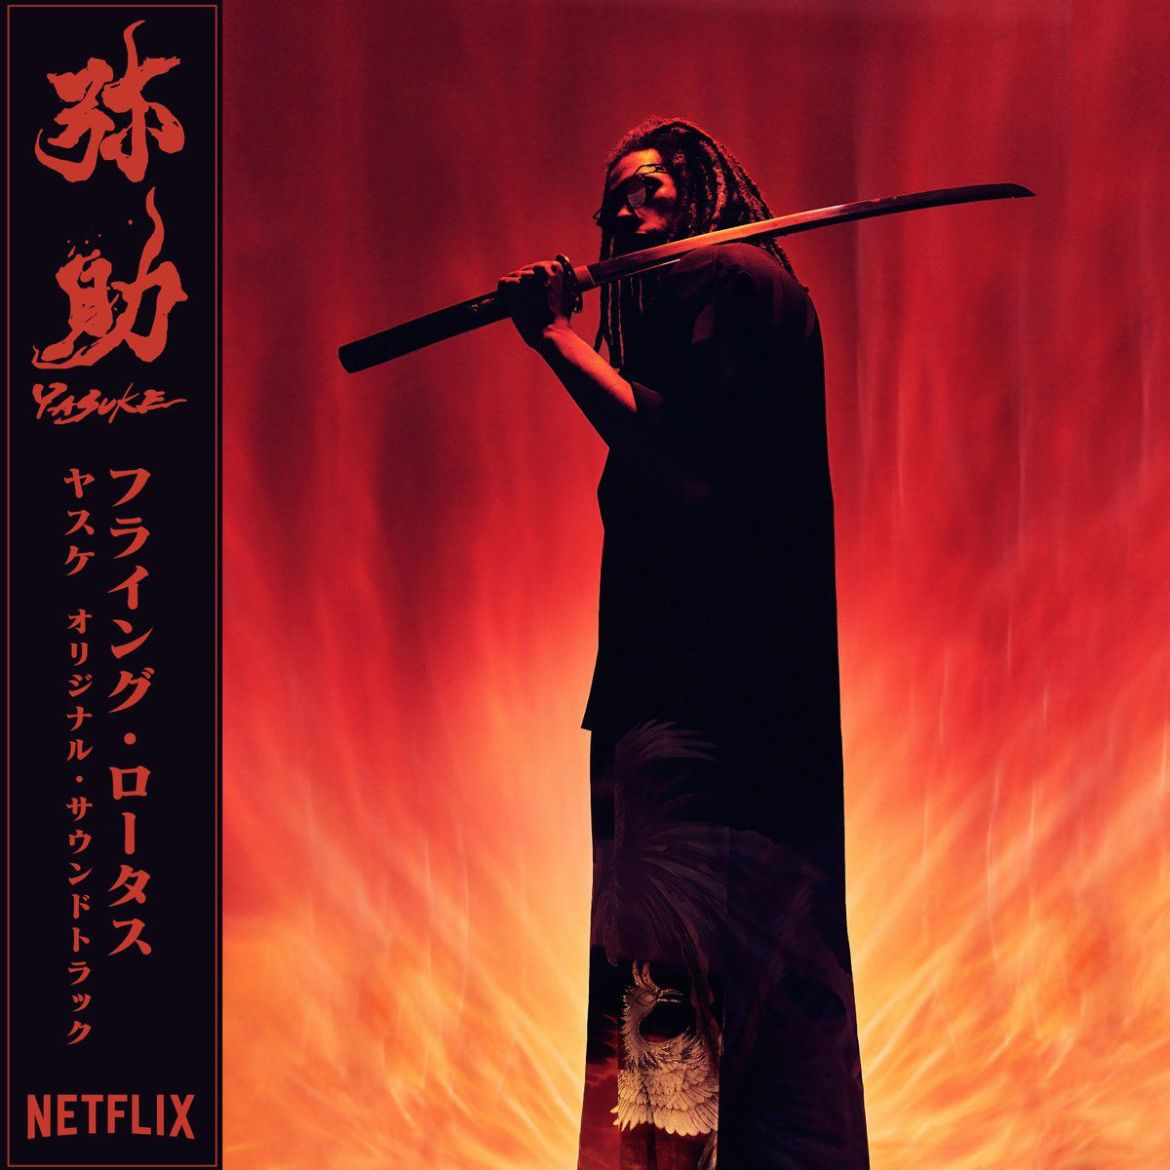 Flying Lotus on the cover of the Yasuke soundtrack